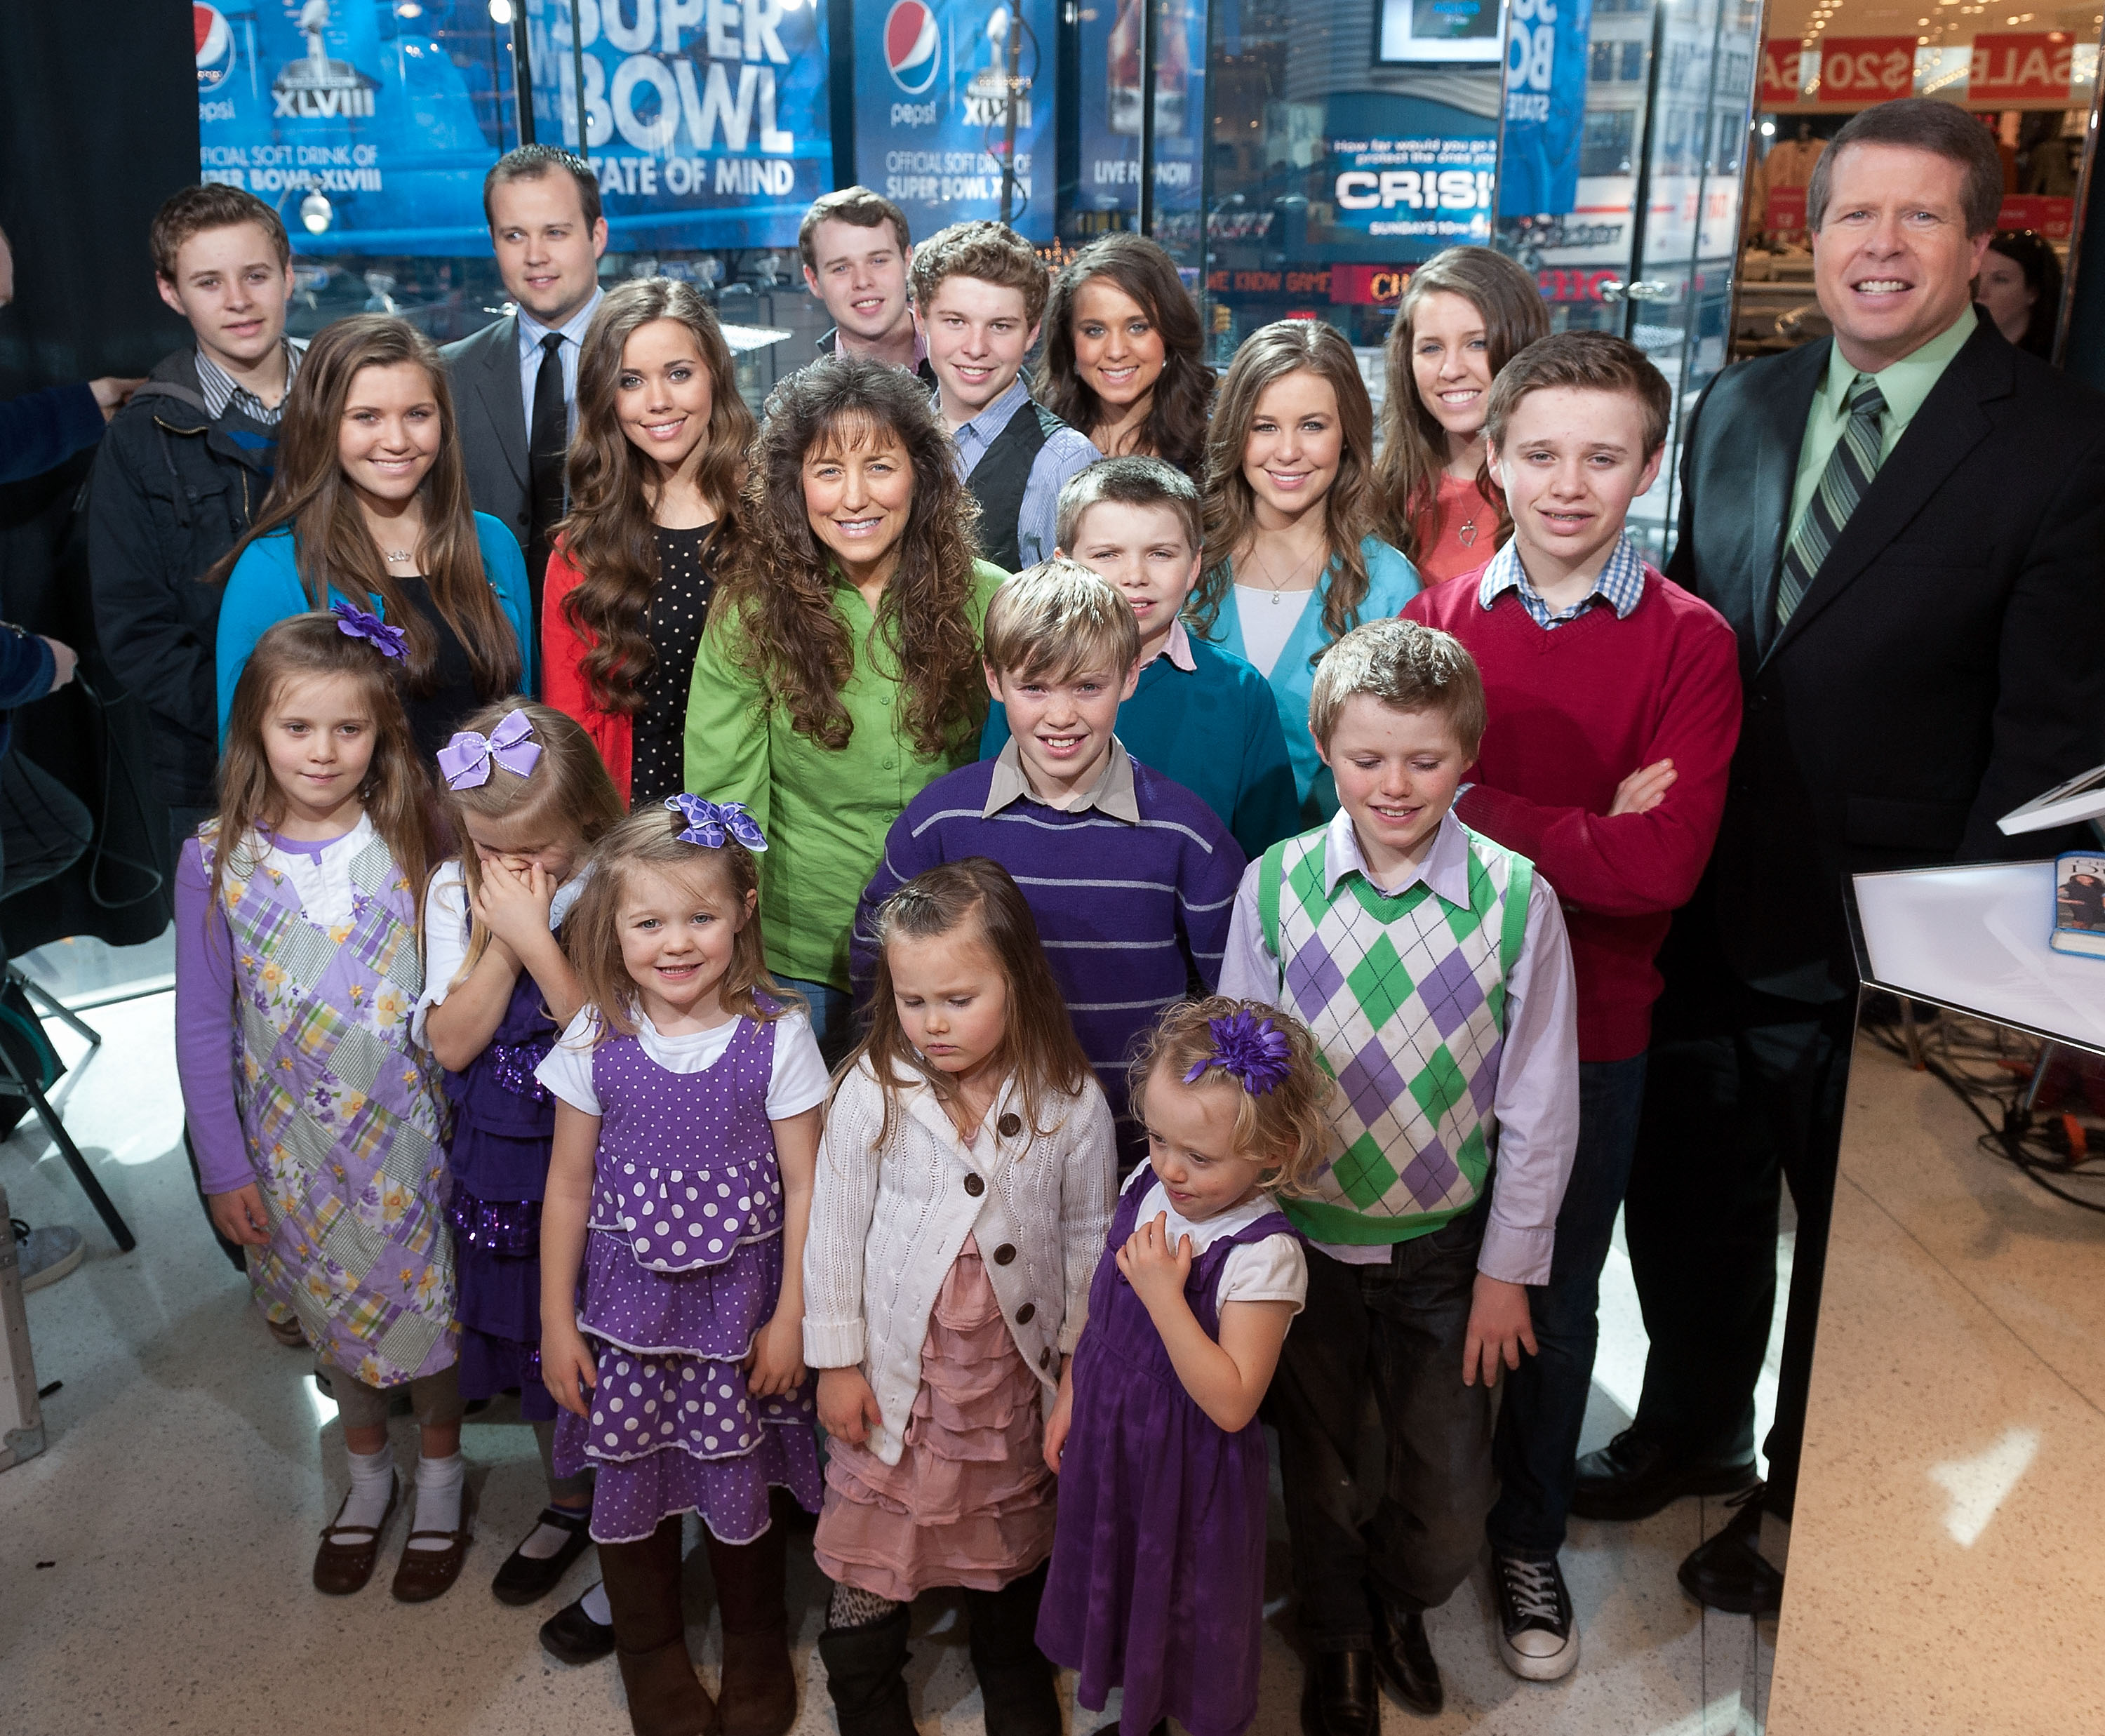 The Duggar family visits 'Extra' at their New York studios on March 11, 2014.